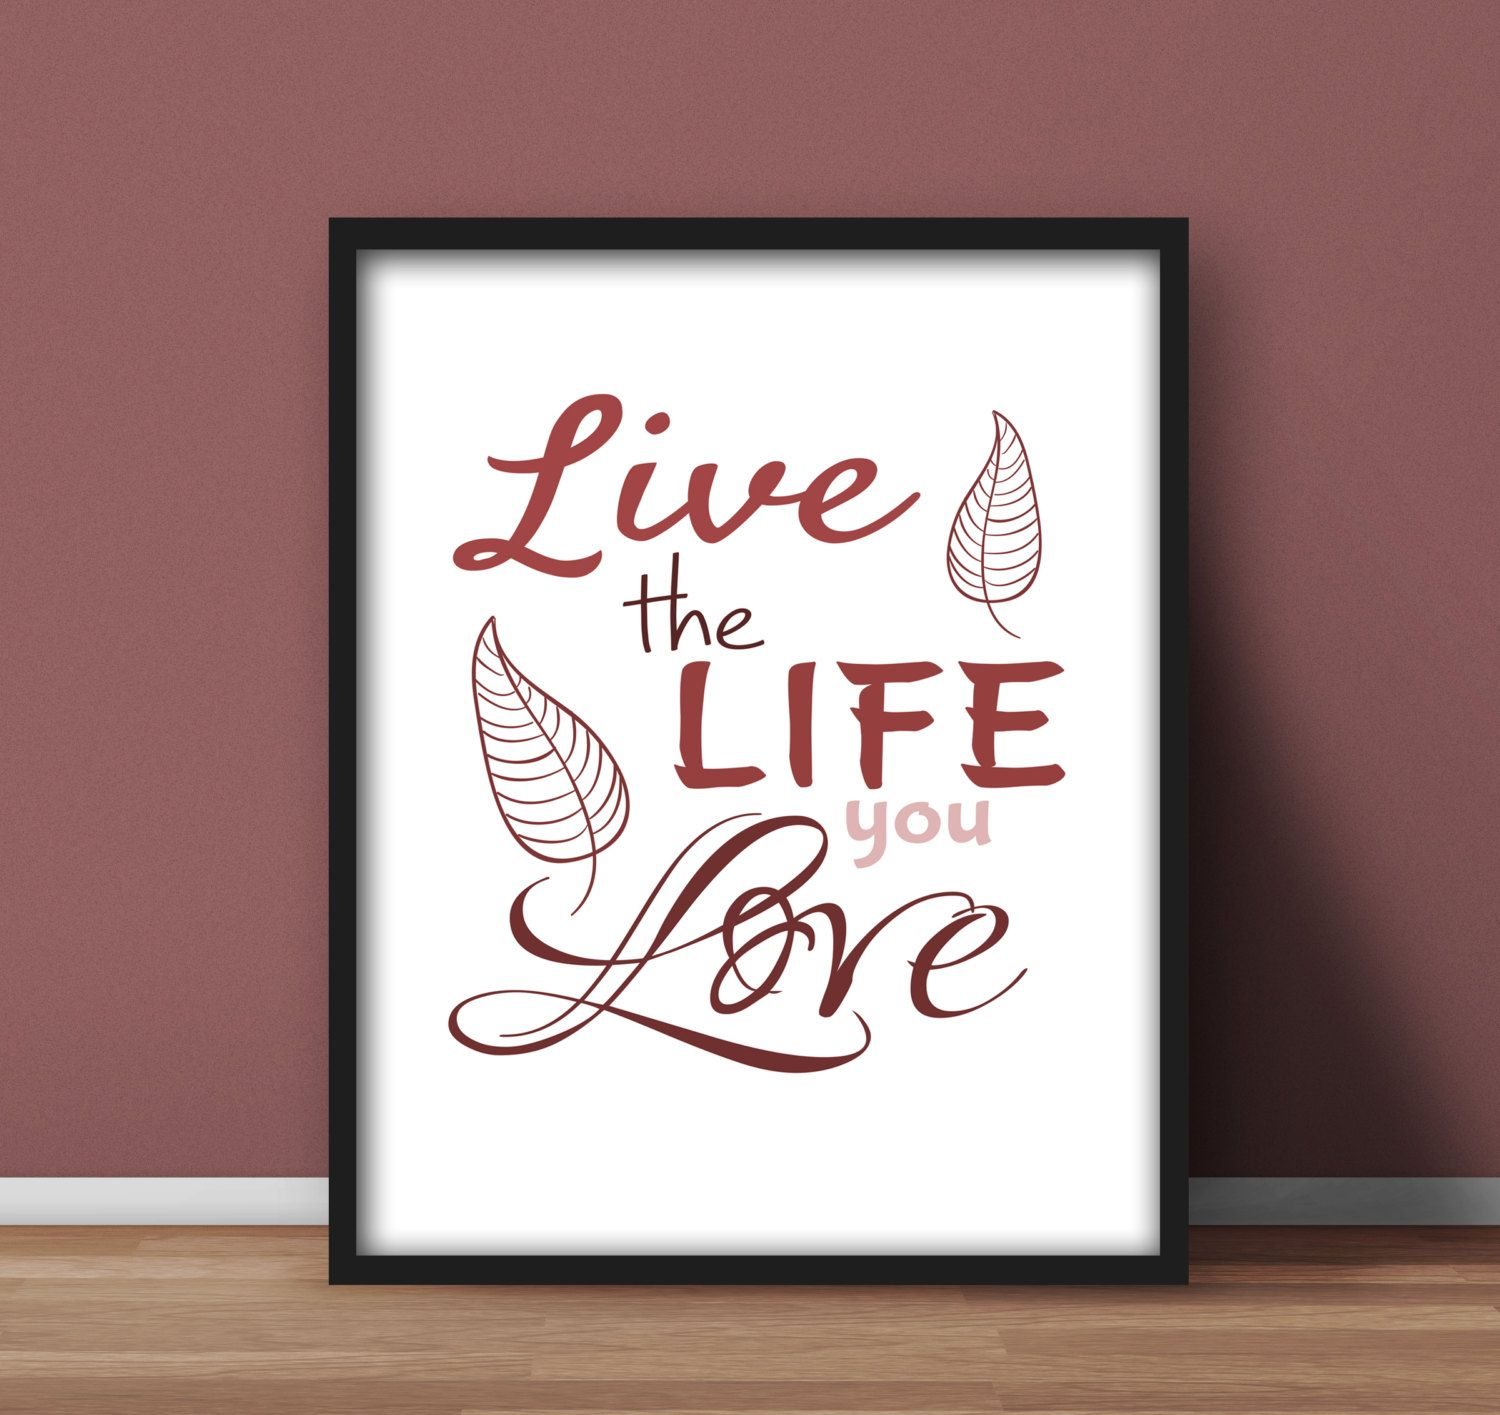 inspirational wall art for office. Inspirational Wall Art Printables, Home Office Decor \u0027Live The Life You Love\u0027 Red Quote Pink Typography, Gift Idea, Downloadable 8x10 By YouGrewPrintables For A